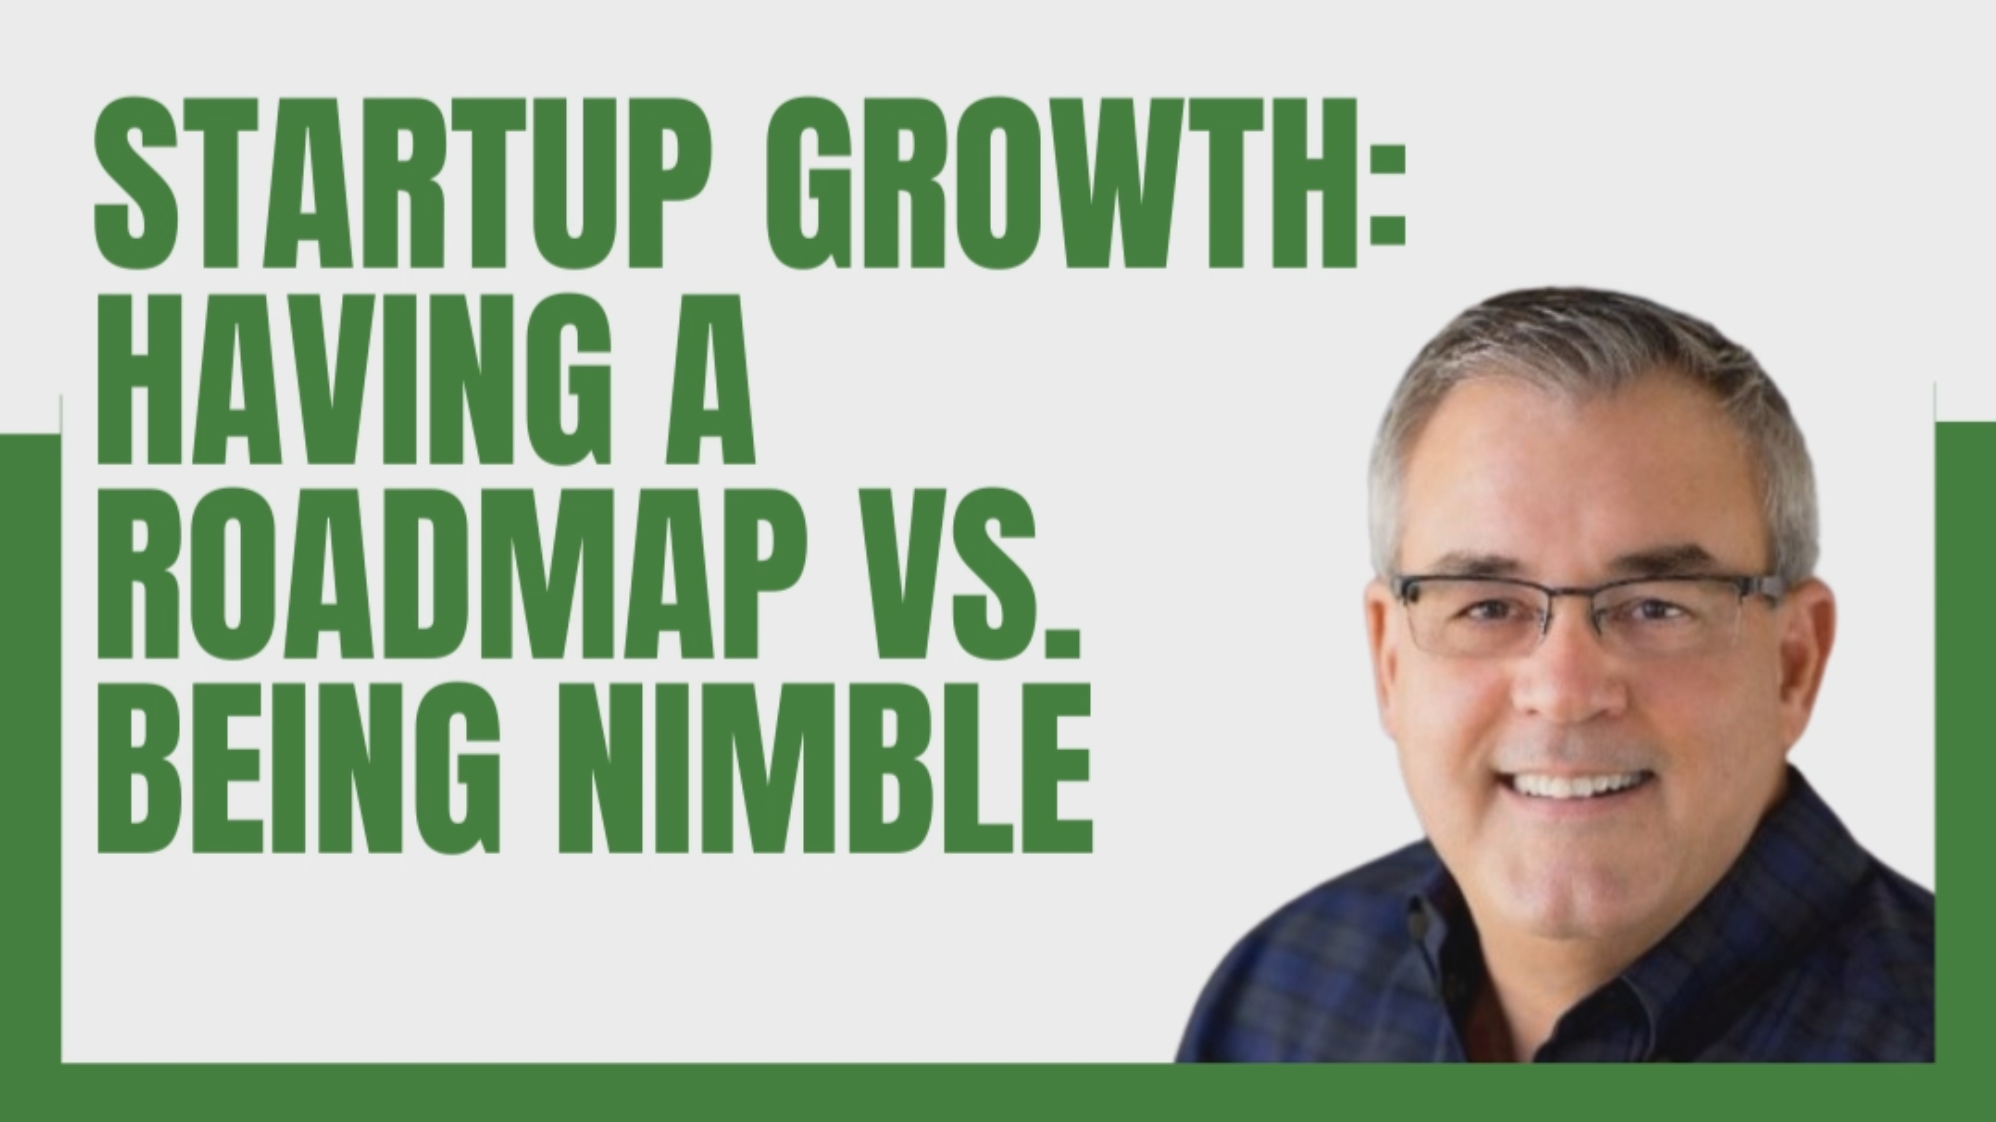 Startup Growth Versus Growth Hacking